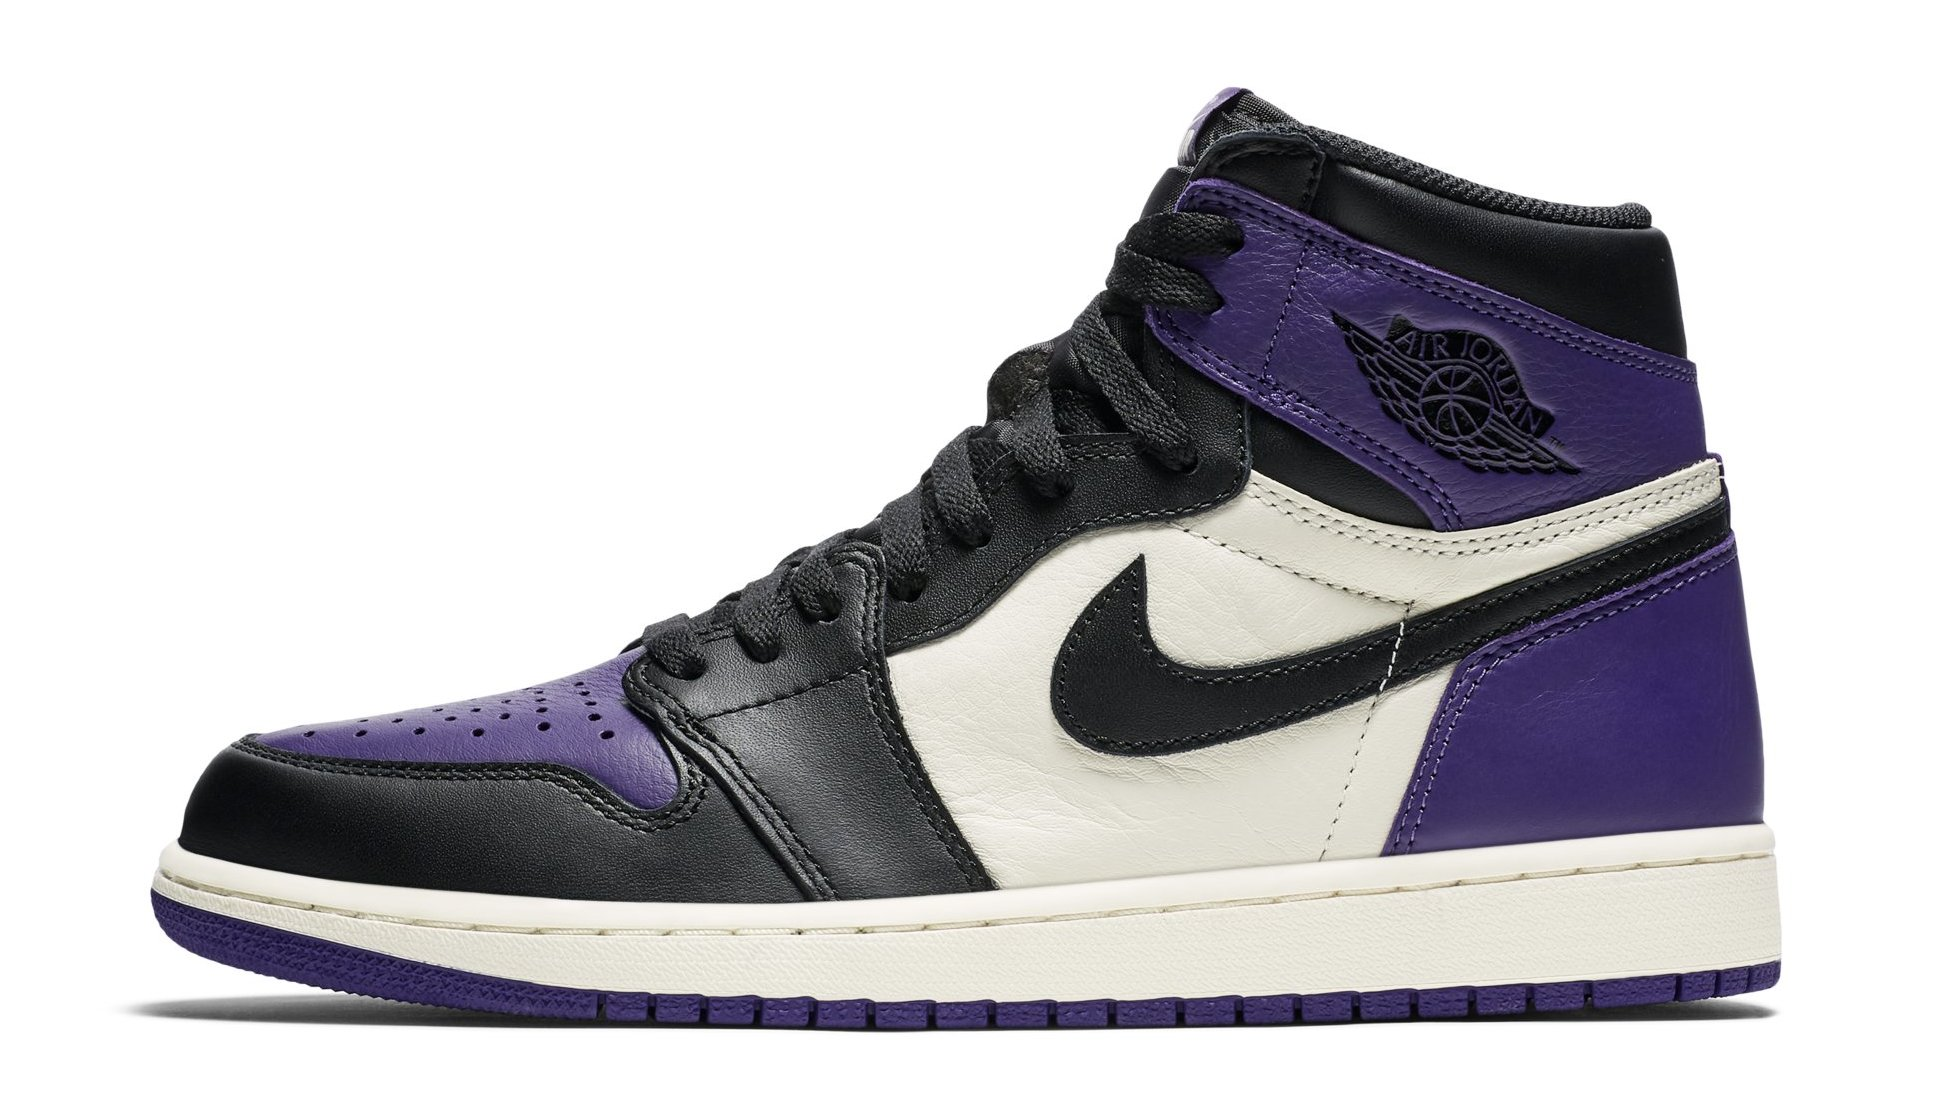 3e99bb950006fe Air Jordan 1 I Court Purple Sail Black Release Date 555088-501 ...